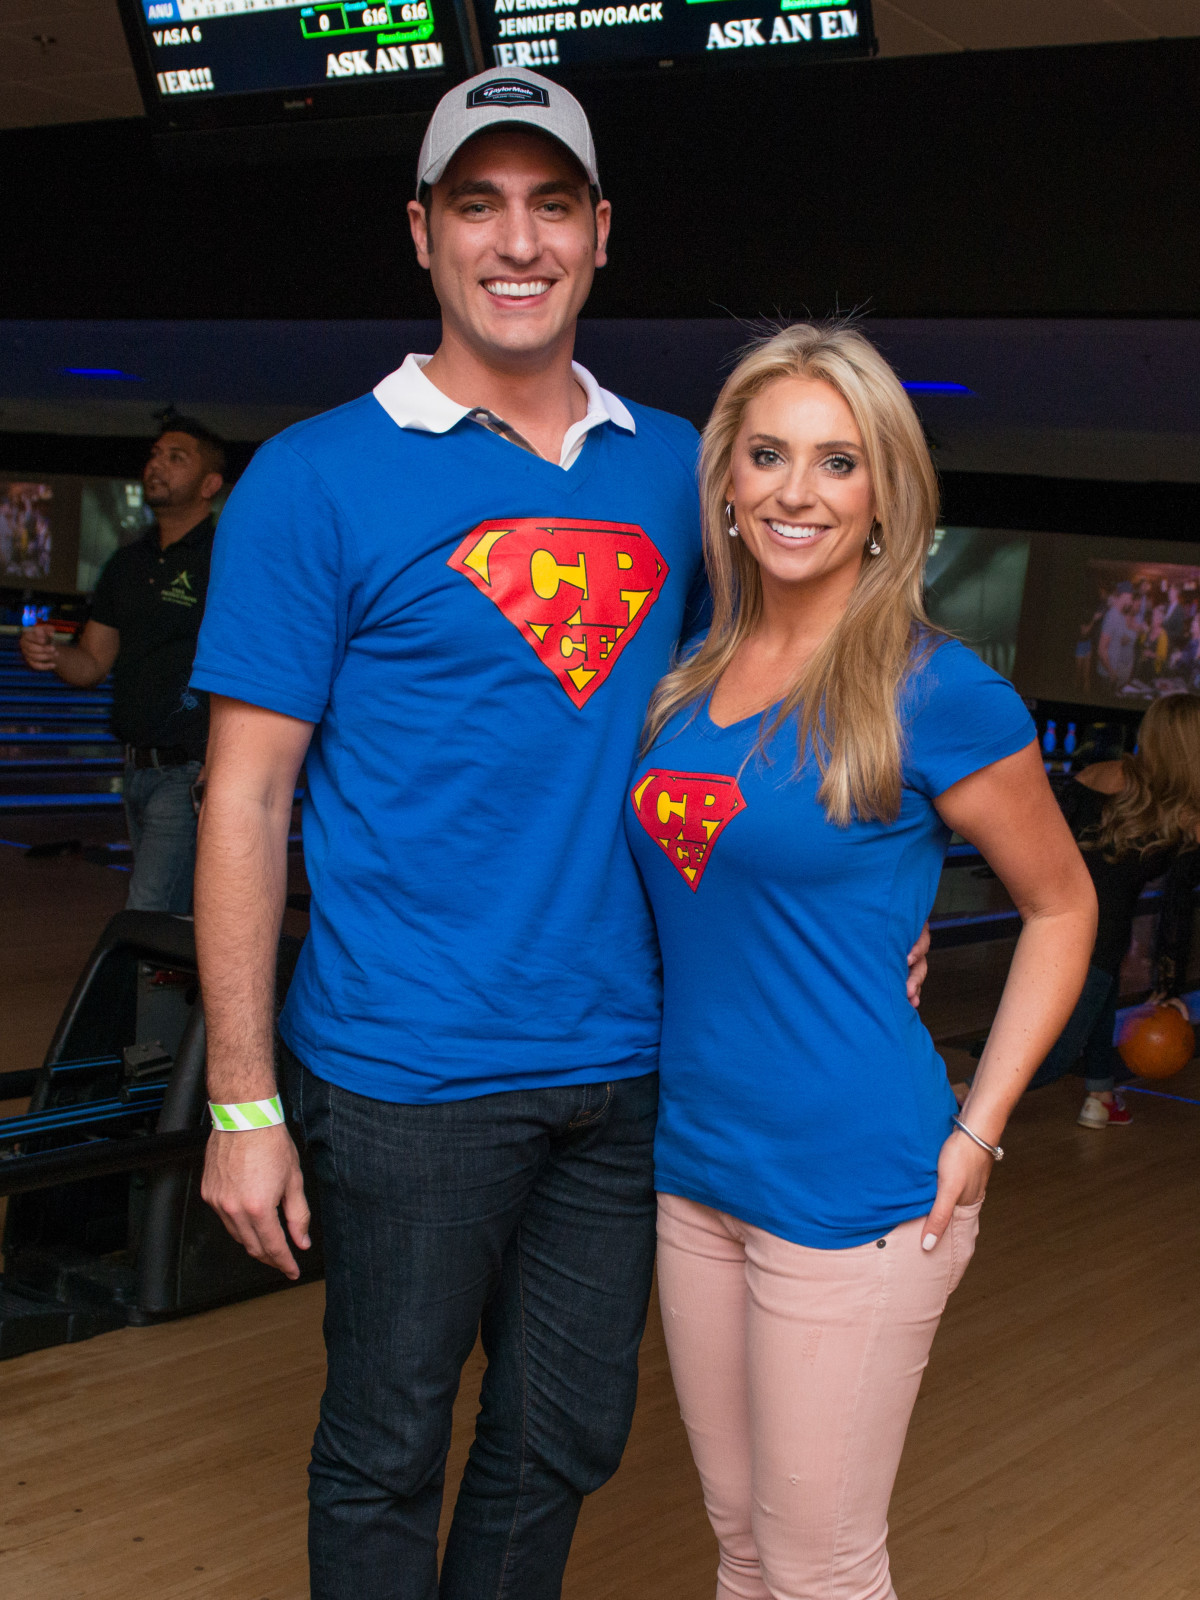 Chester Pitts bowling event Lane Craft, Chita Johnson